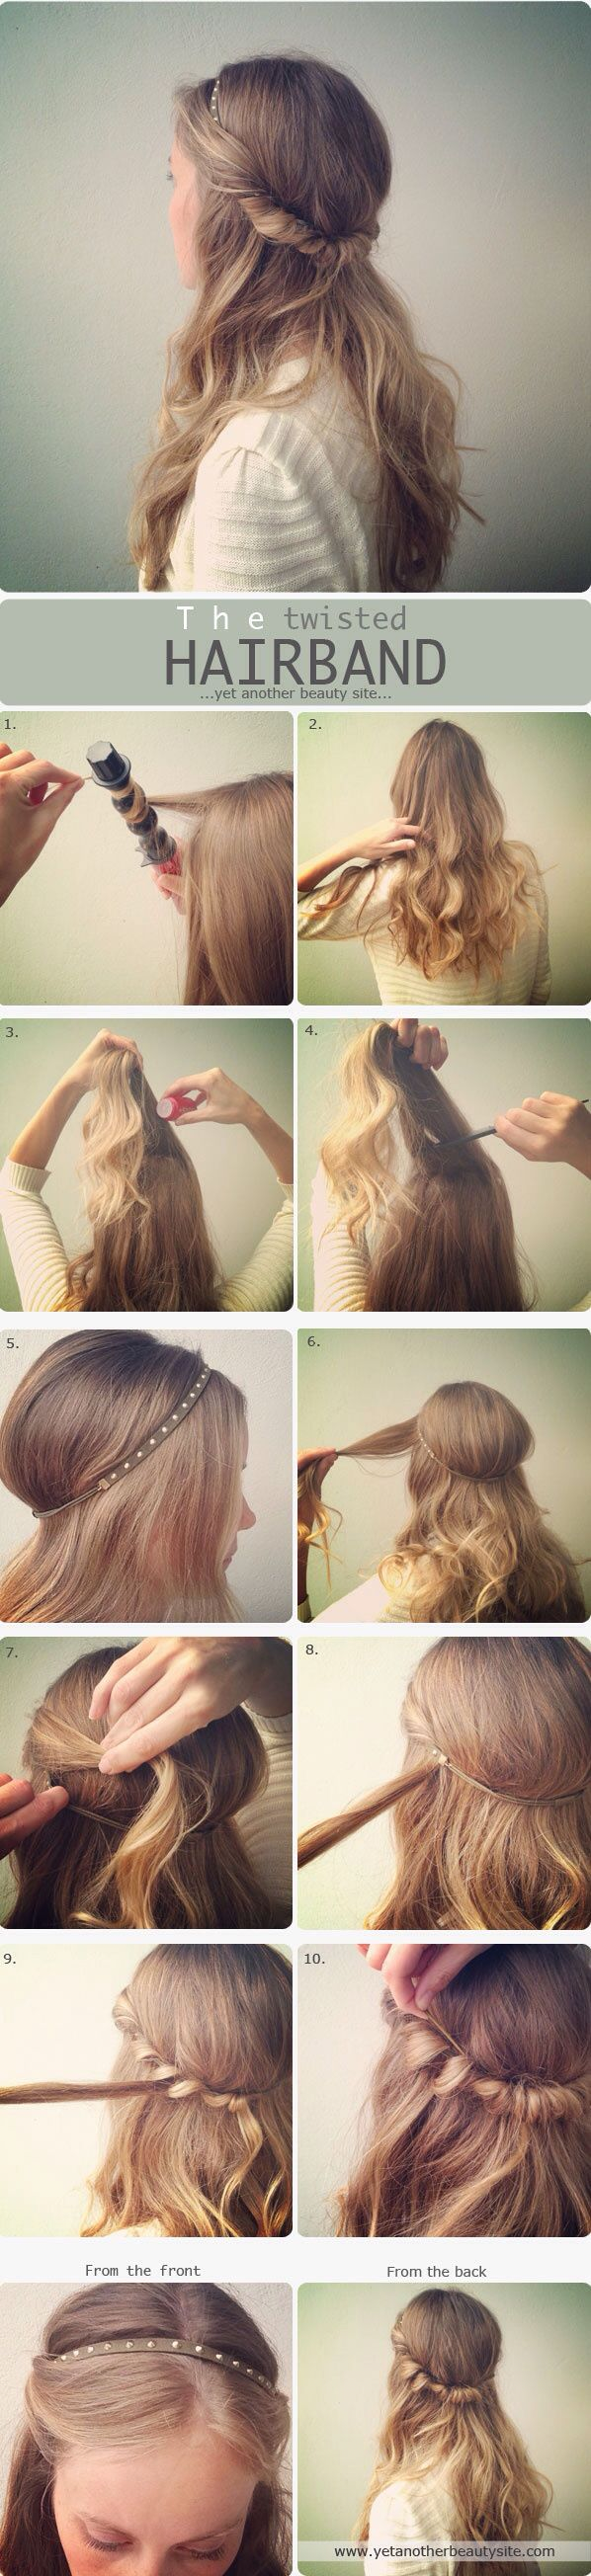 18 Simple and Easy Hairstyles for Your Daily Look   Pretty Designs ...